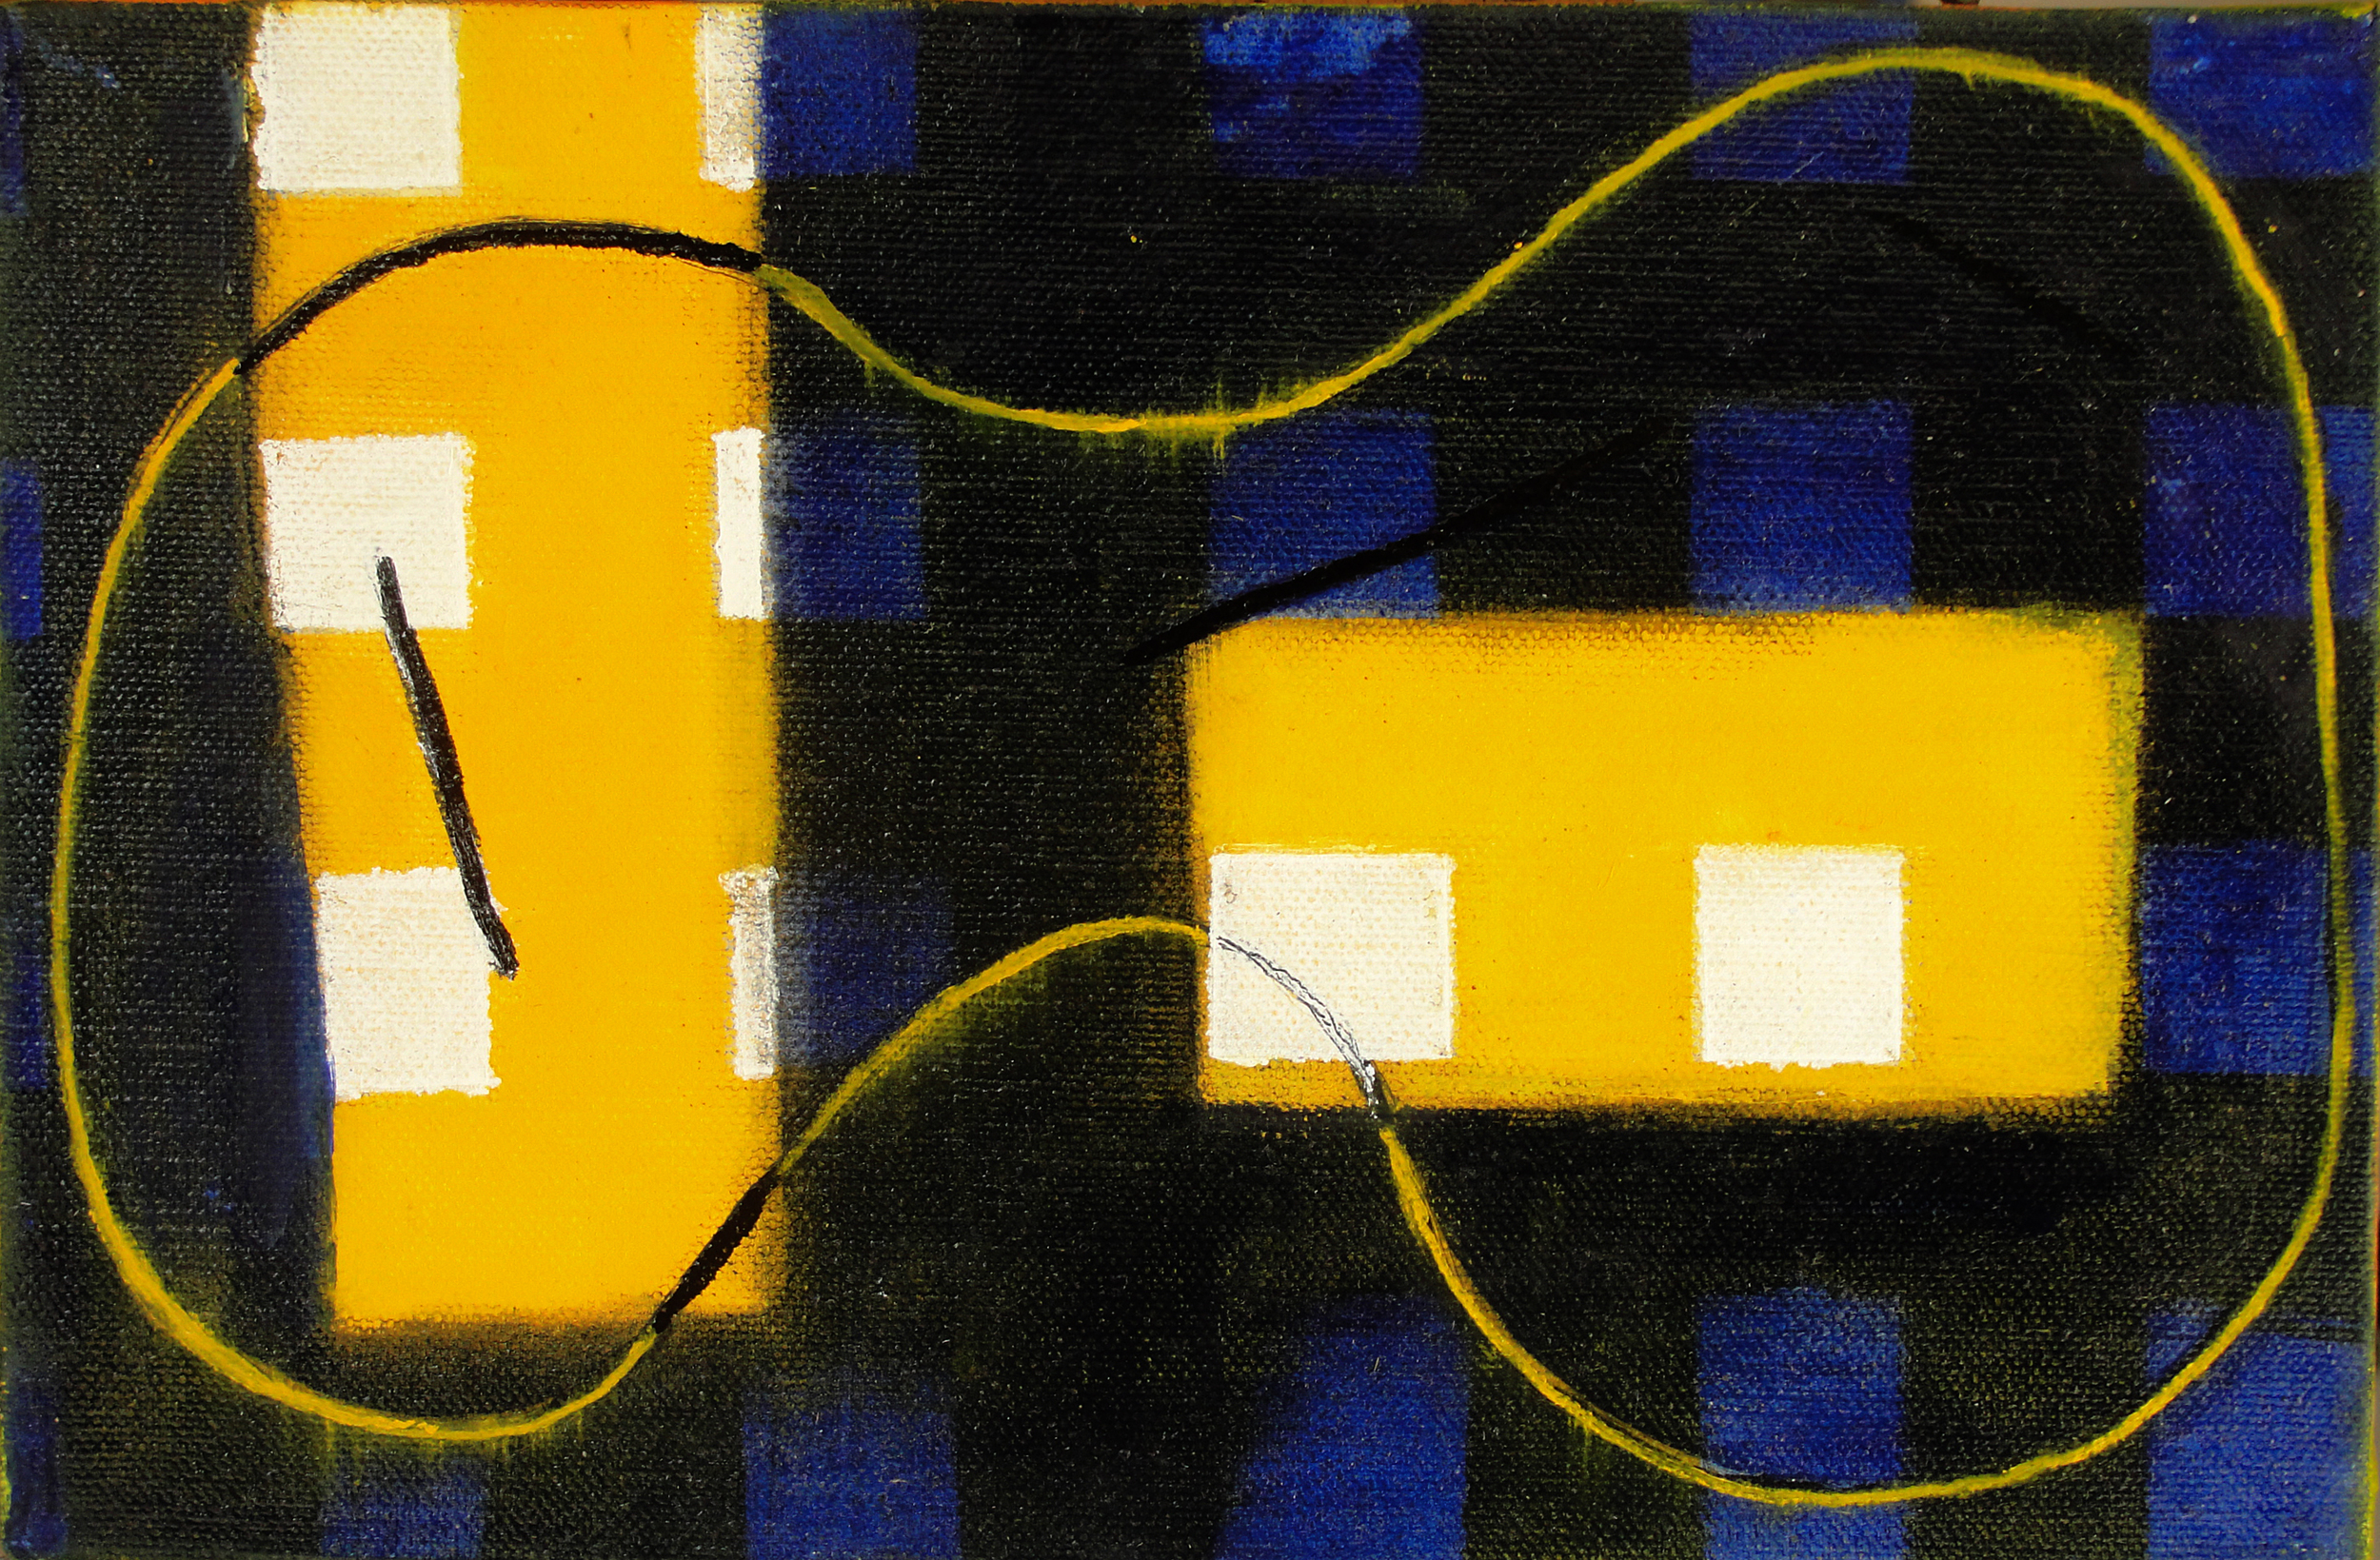 Subdivisions 8 (2011), 6 x 9 in, oil on canvas